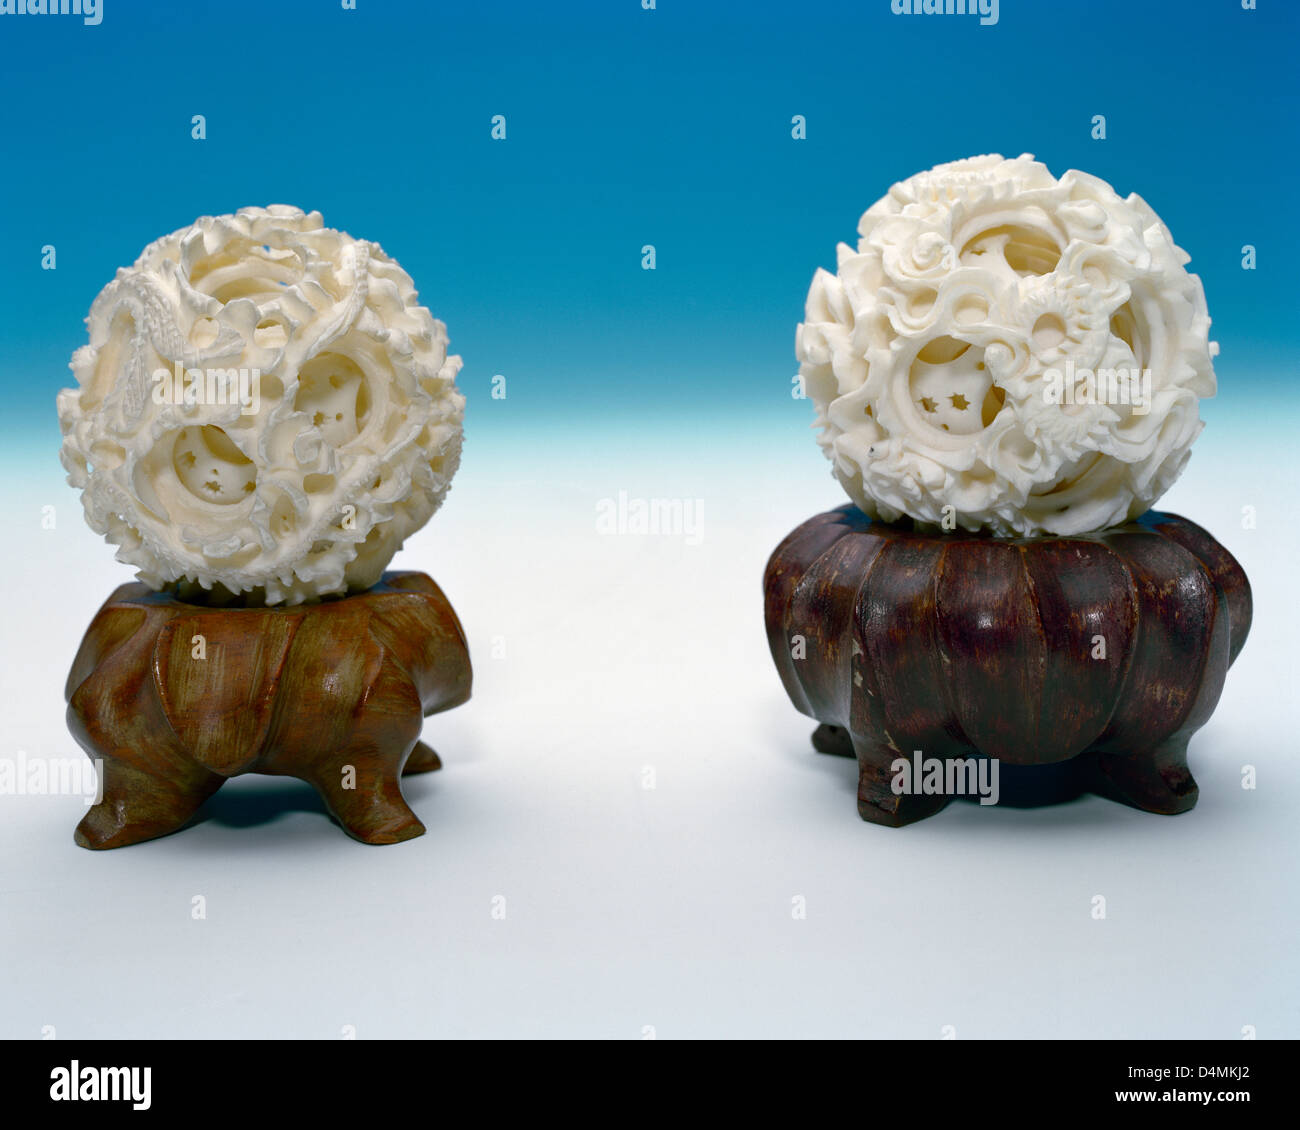 Chinese carved ivory concentric balls on rosewood stands - Stock Image